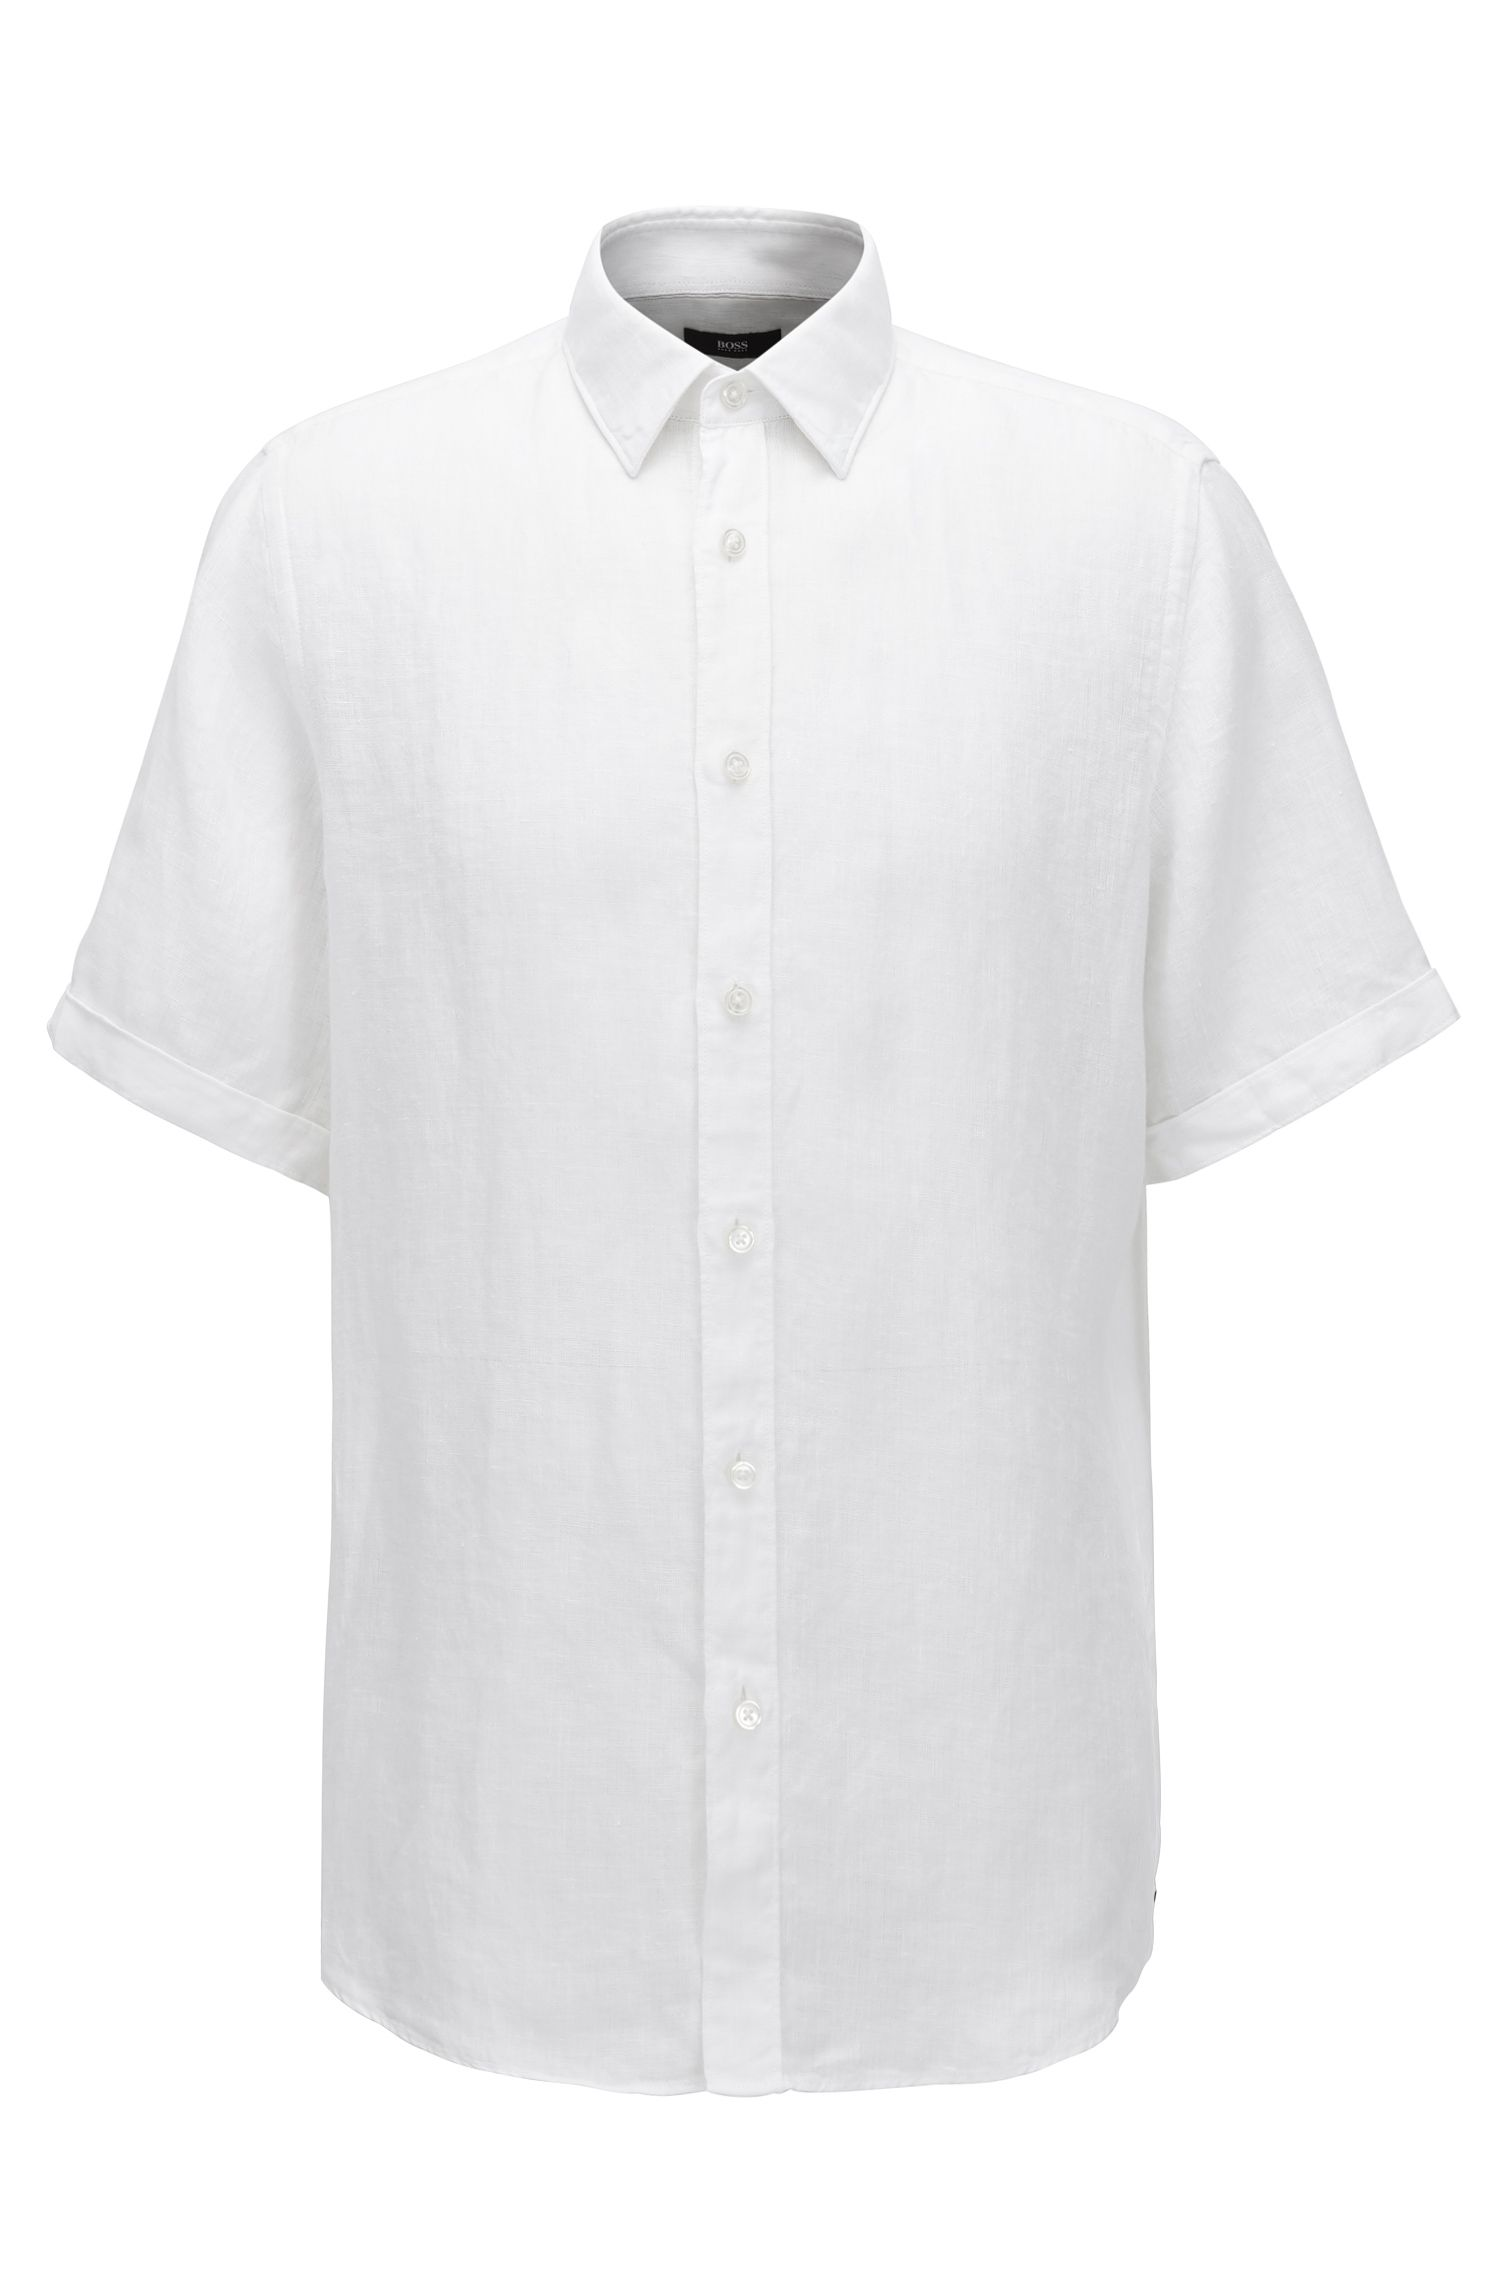 'Luka' | Regular Fit, Linen Button Down Shirt